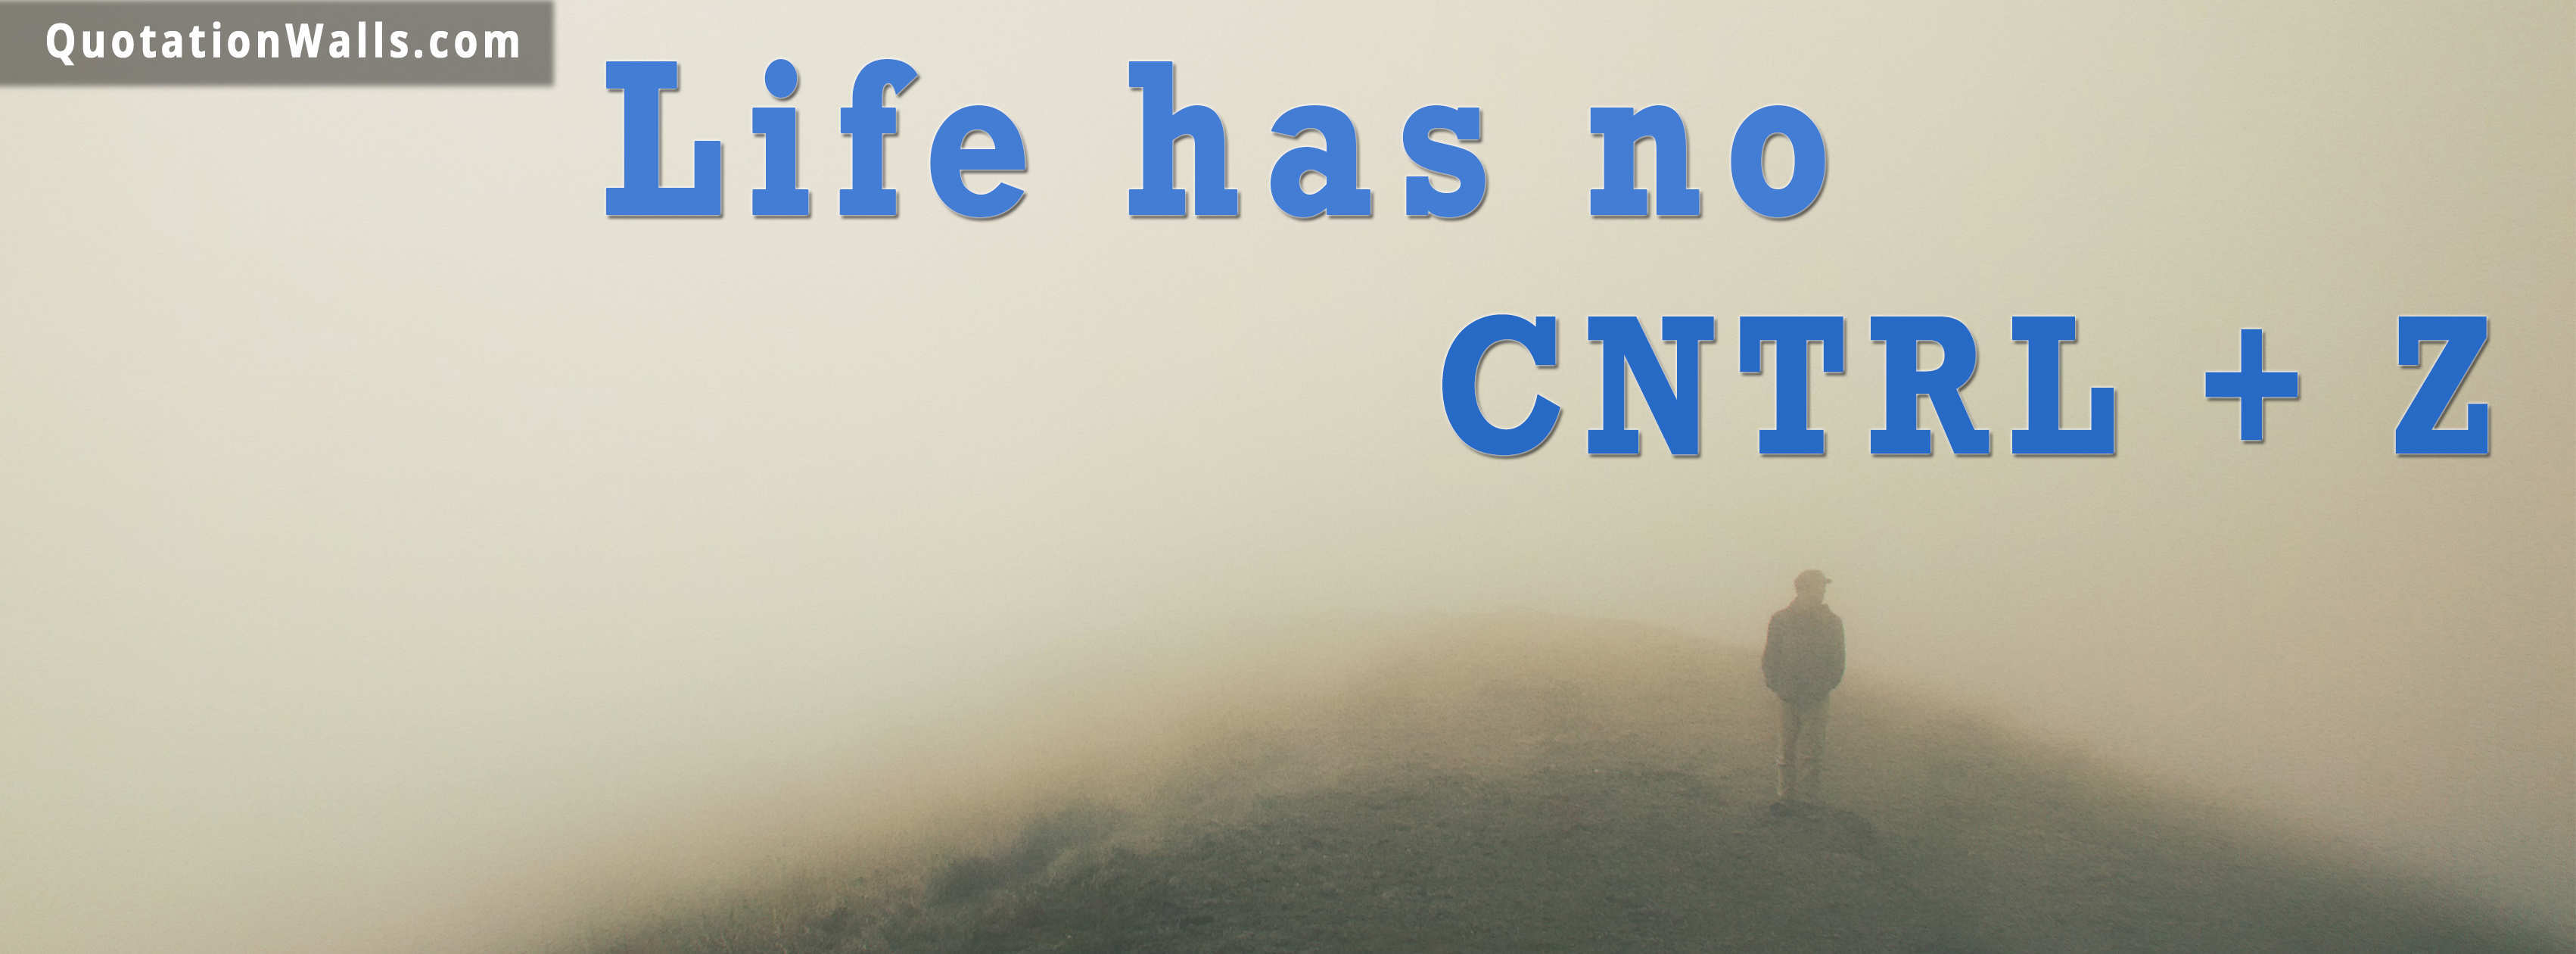 Life Cover Quotes Life Has No Ctrlz Life Facebook Cover Photo  Quotationwalls